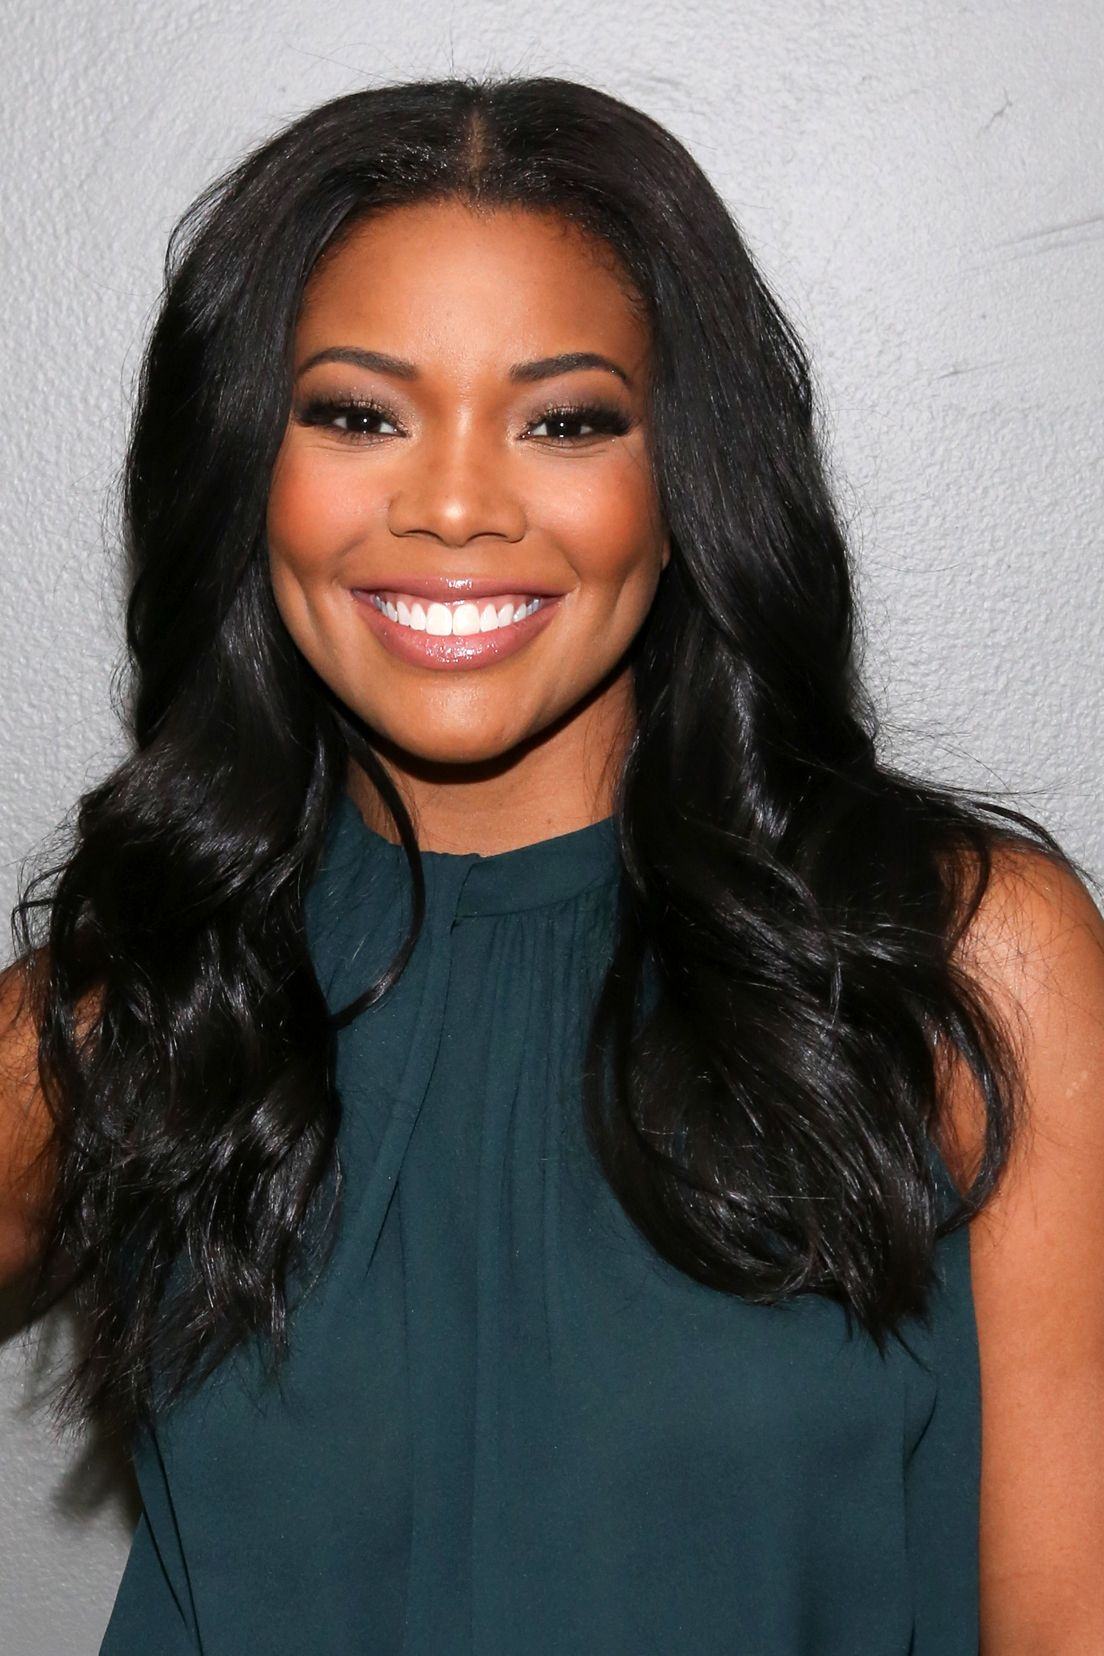 "<p>The secret to Gabrielle Union's fountain of youth is that in her mid-30s, she began drinking a *GALLON* of water a day for glow-y, hydrated skin. Her pro tip? Drink as much as H2O as you can in the morning: ""Try to drink half of it by noon and then just casually drink the other half until 6:00 p.m—after then it gets a little tricky,"" she told <a href=""http://www.elle.com/beauty/interviews/a19743/gabrielle-union-beauty-interview/"" target=""_blank"">Elle.com</a>.</p>"